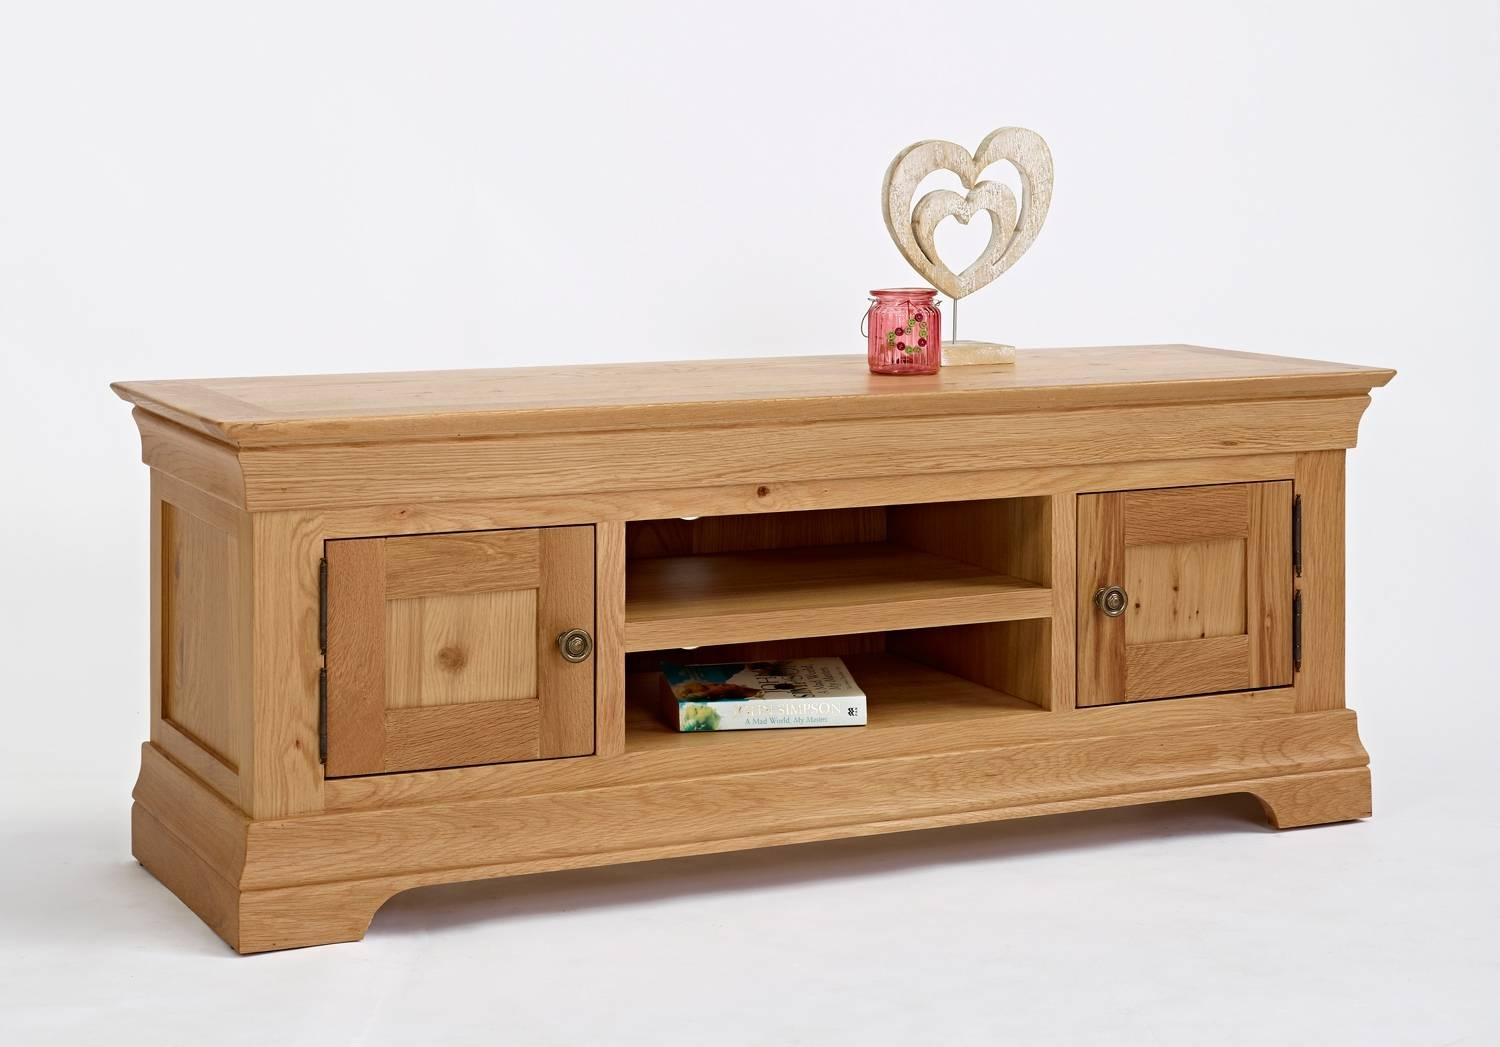 Bordeaux Oak Large Tv Unit | Oak Furniture Solutions throughout Oak Tv Cabinets With Doors (Image 3 of 15)